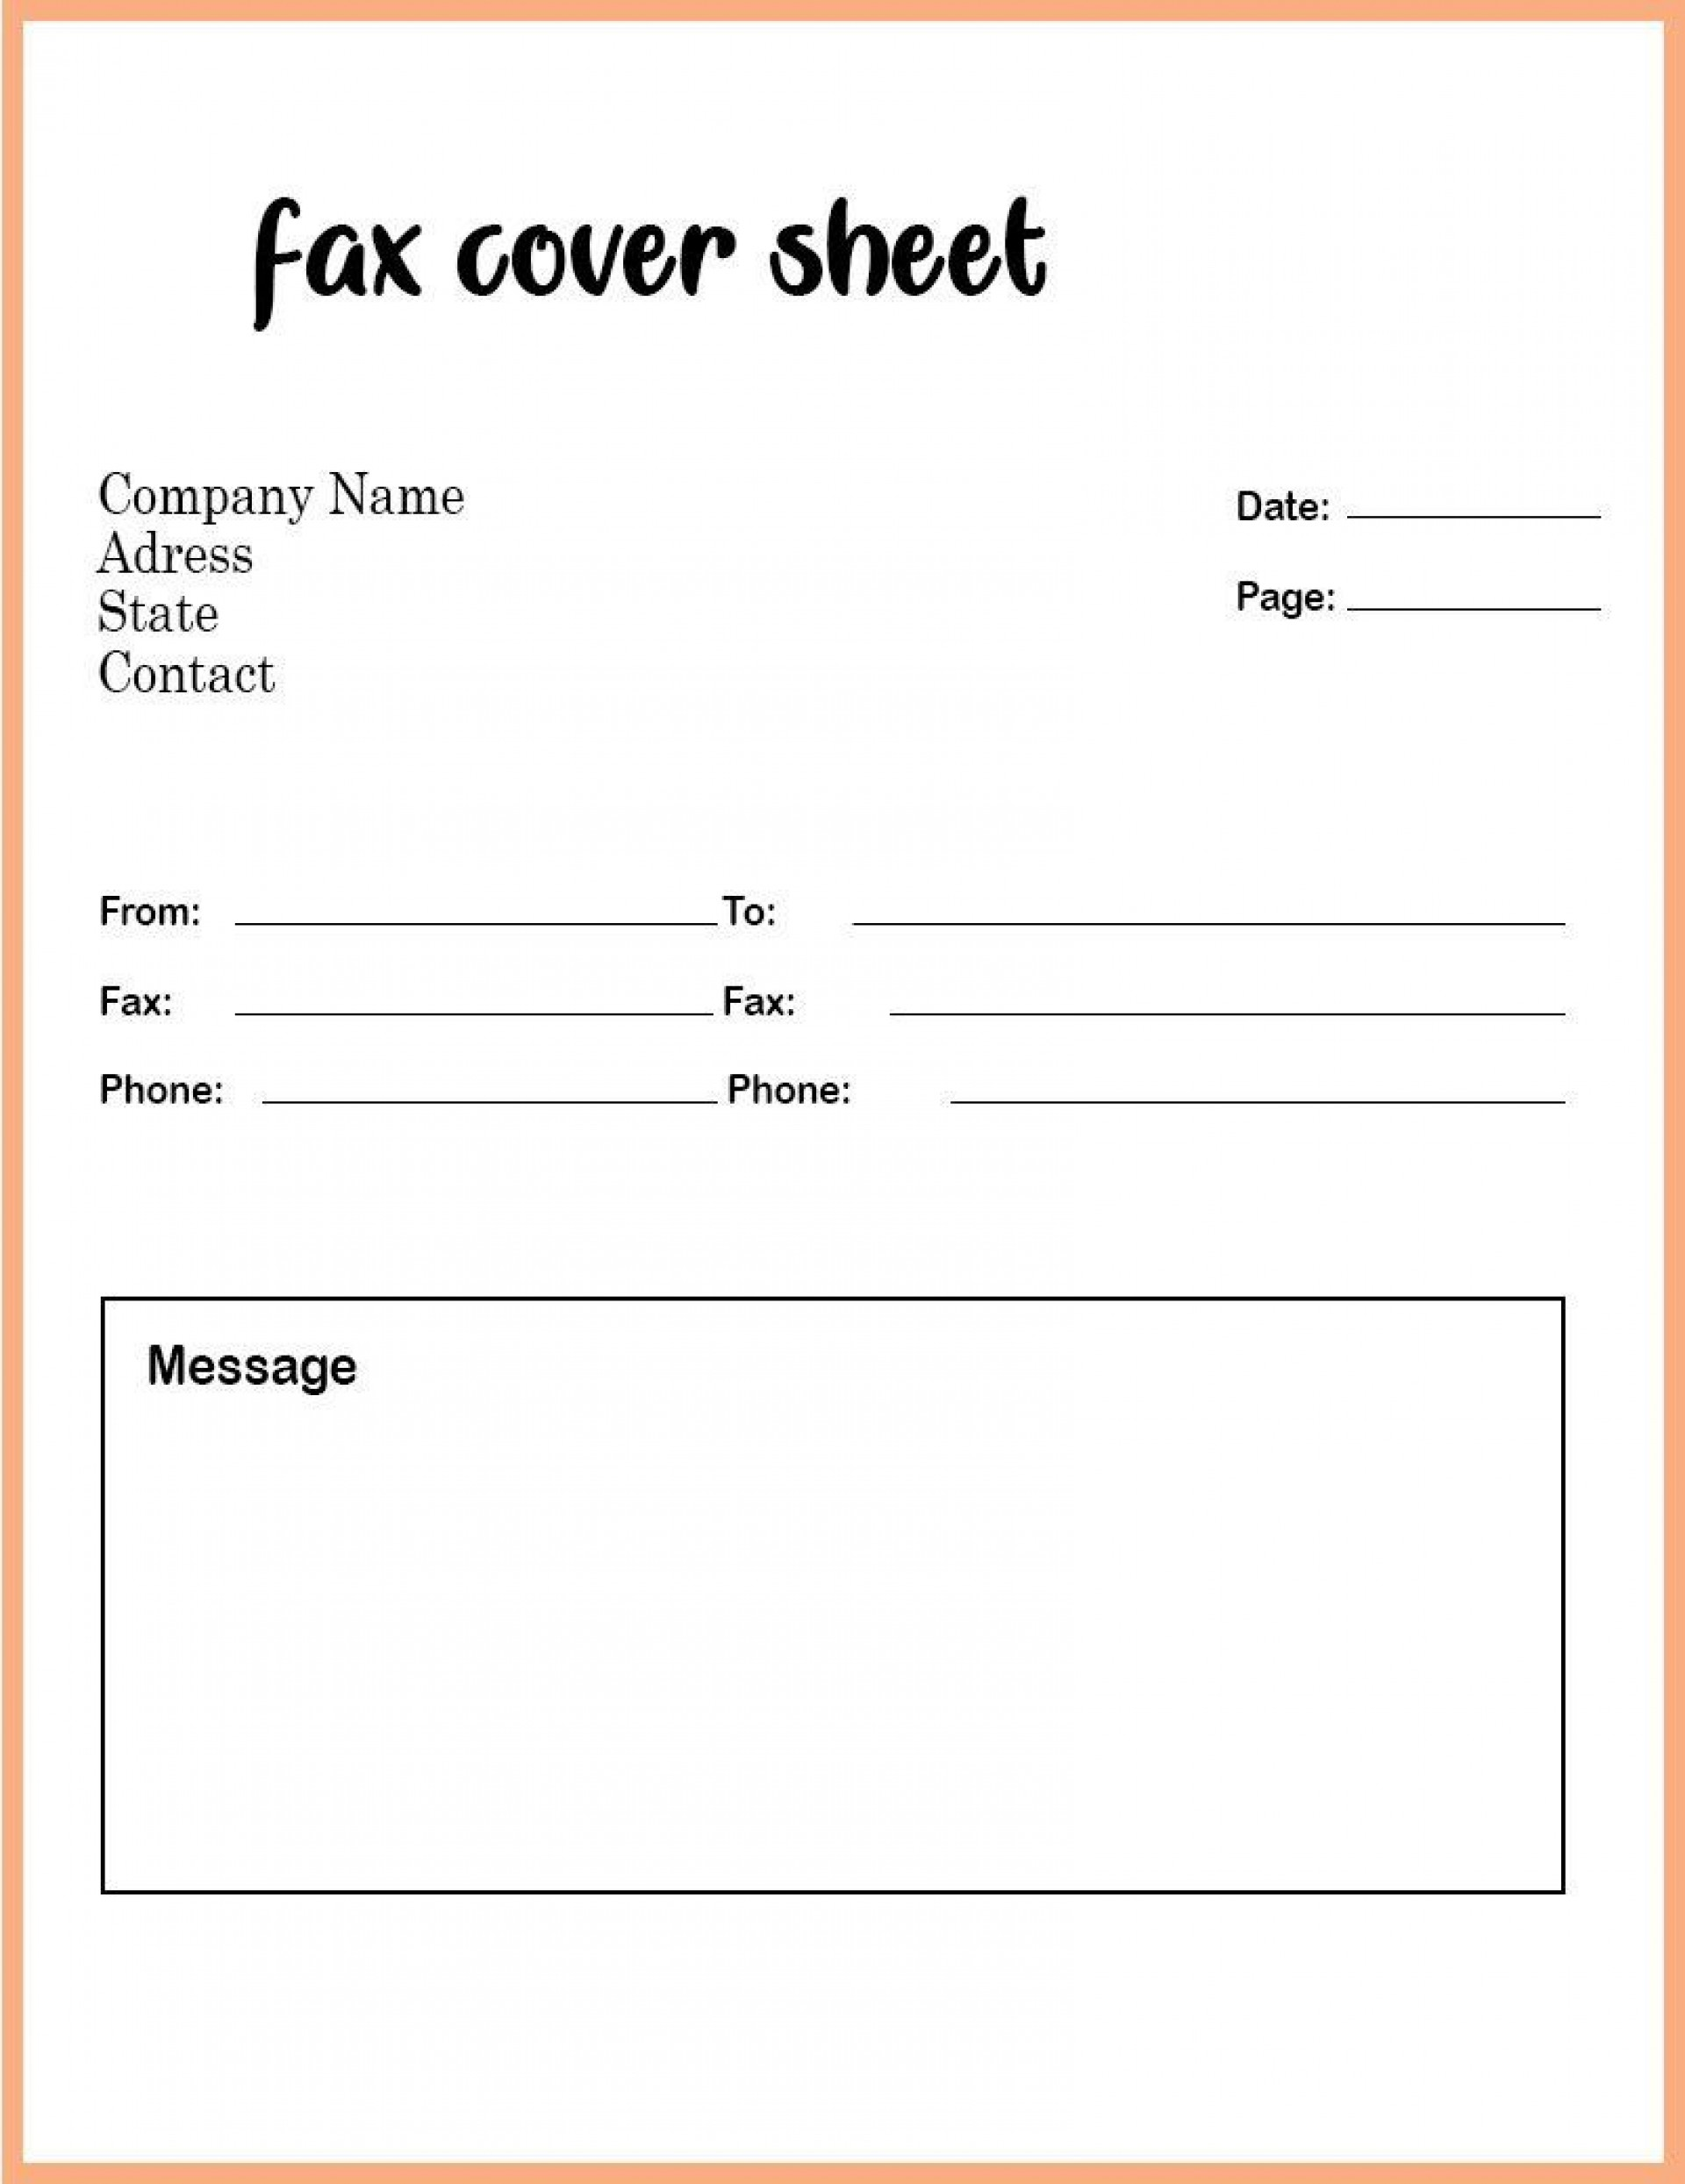 008 Phenomenal Fax Template Microsoft Word Picture  Cover Sheet 2010 Letter Busines1920